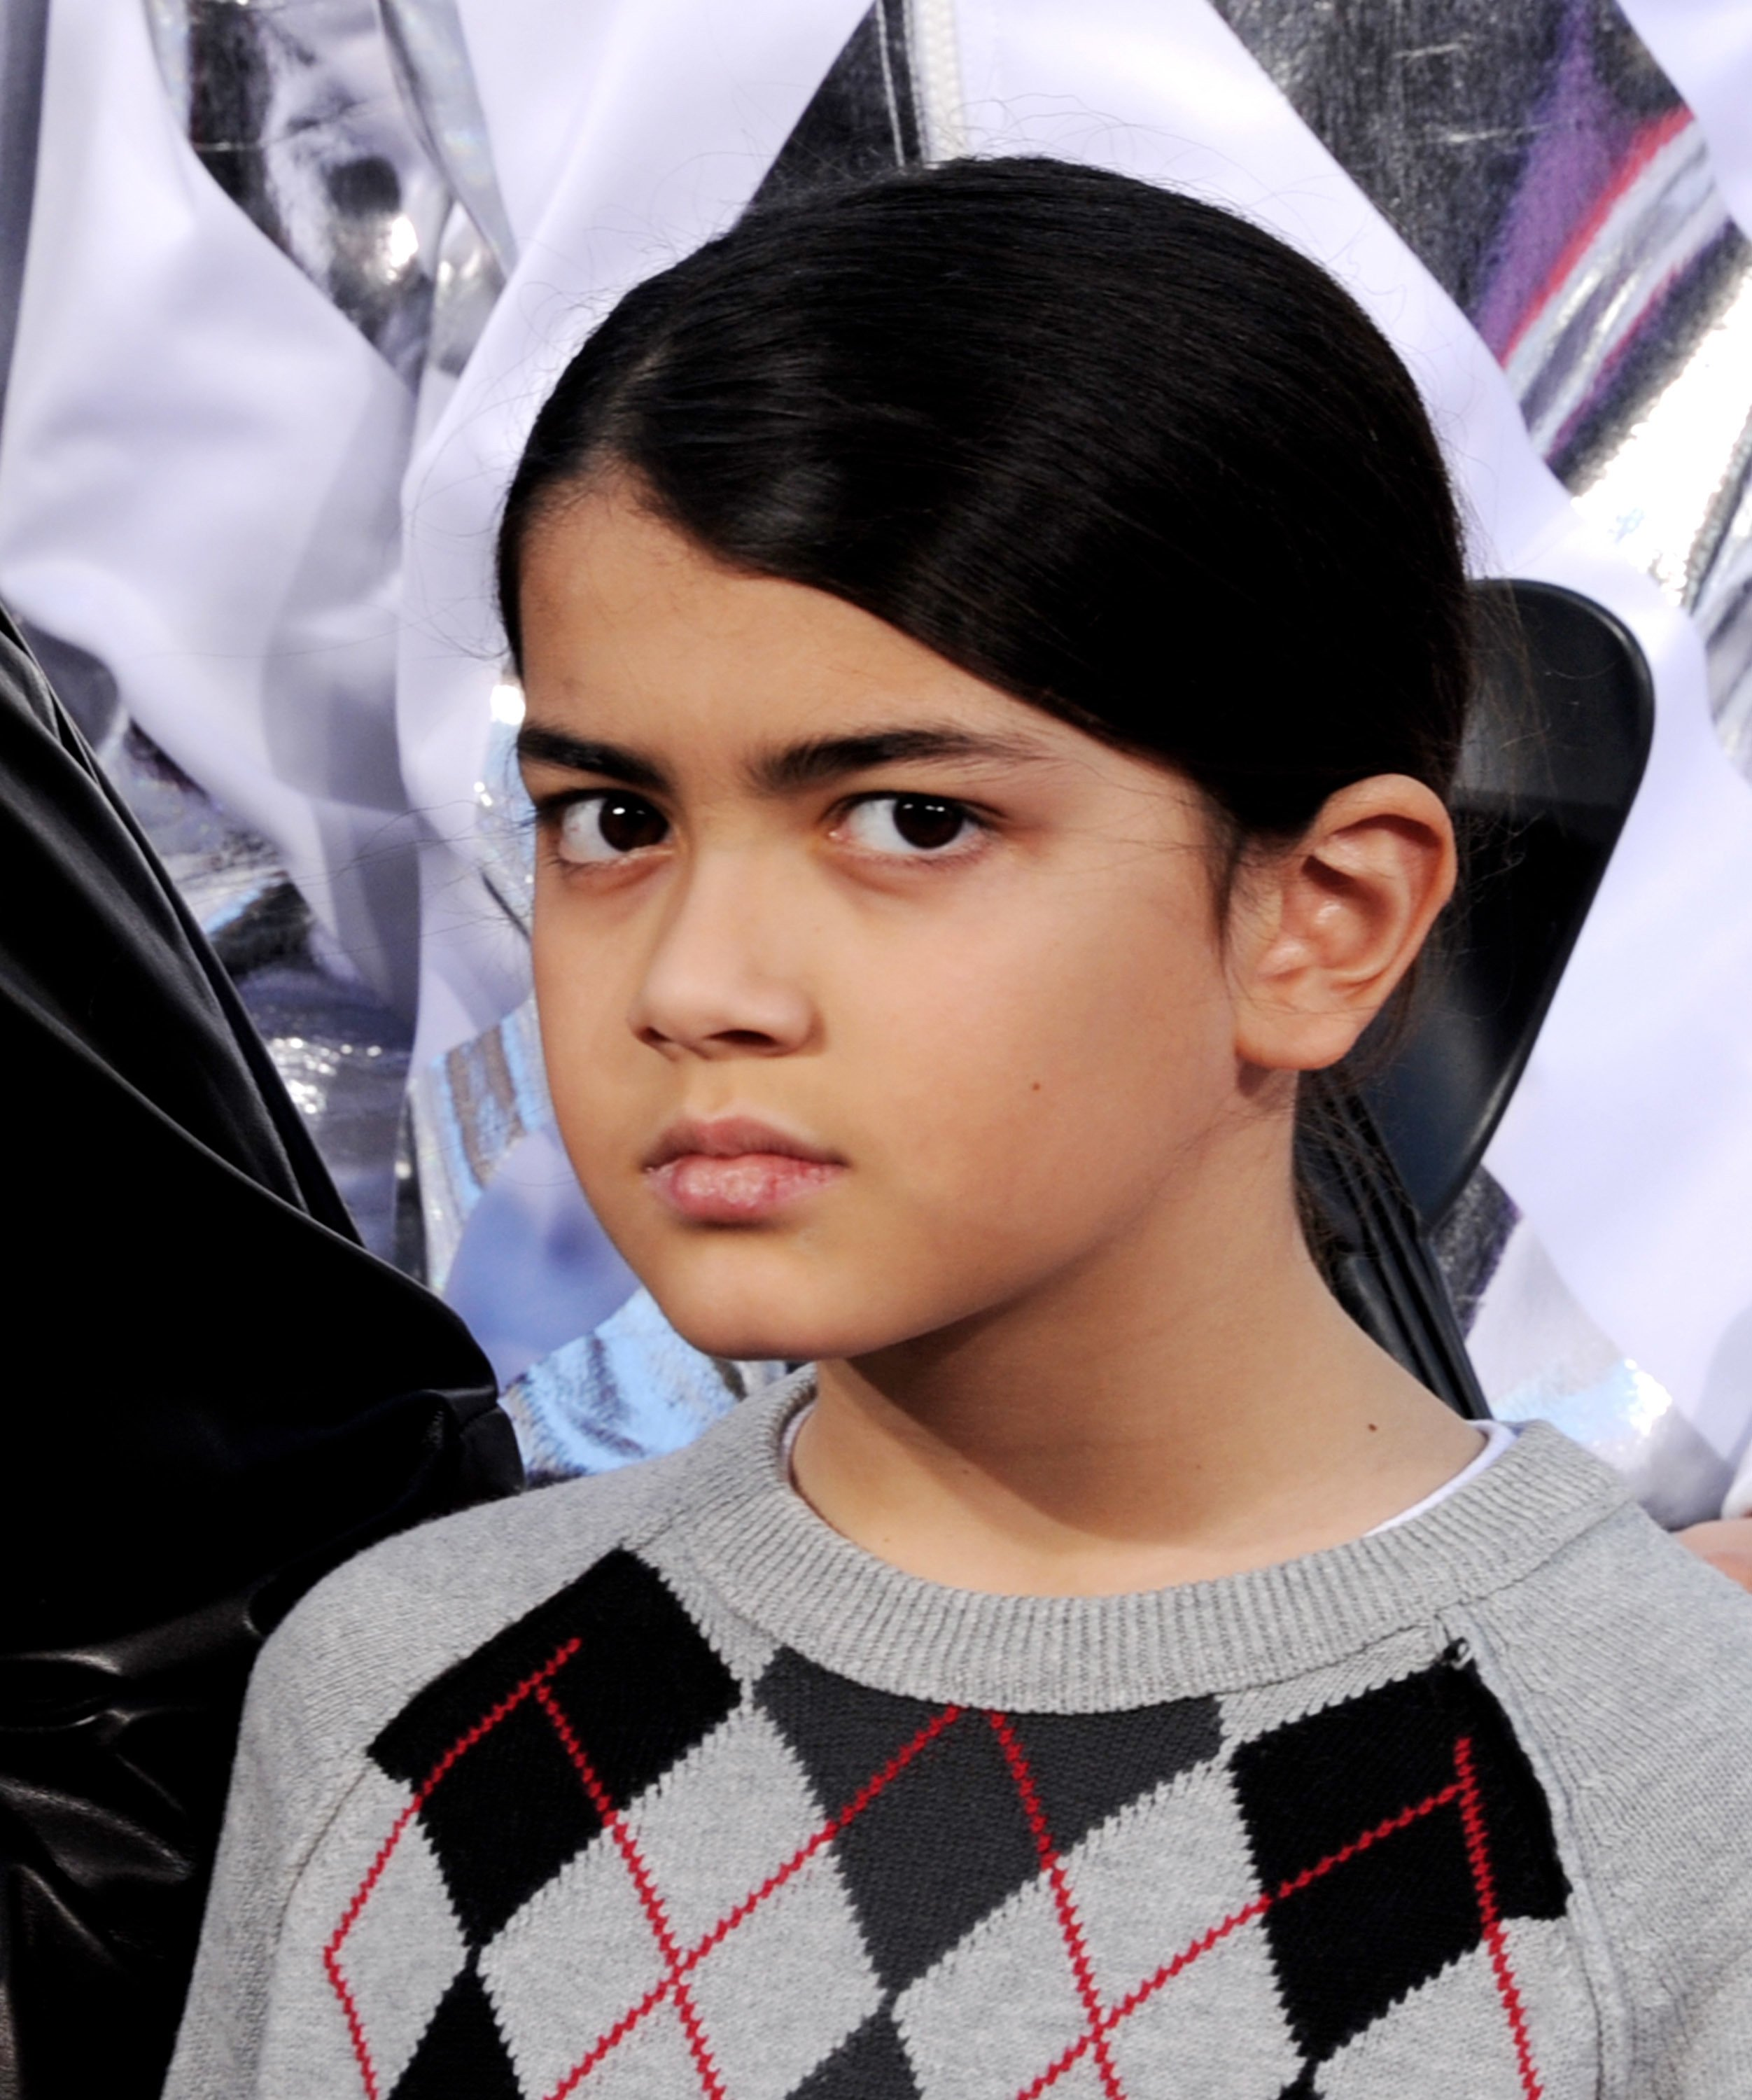 Blanket Jackson appears at the Michael Jackson Hand and Footprint ceremony at Grauman's Chinese Theatre on January 26, 2012 in Los Angeles, California | Photo: Getty Images